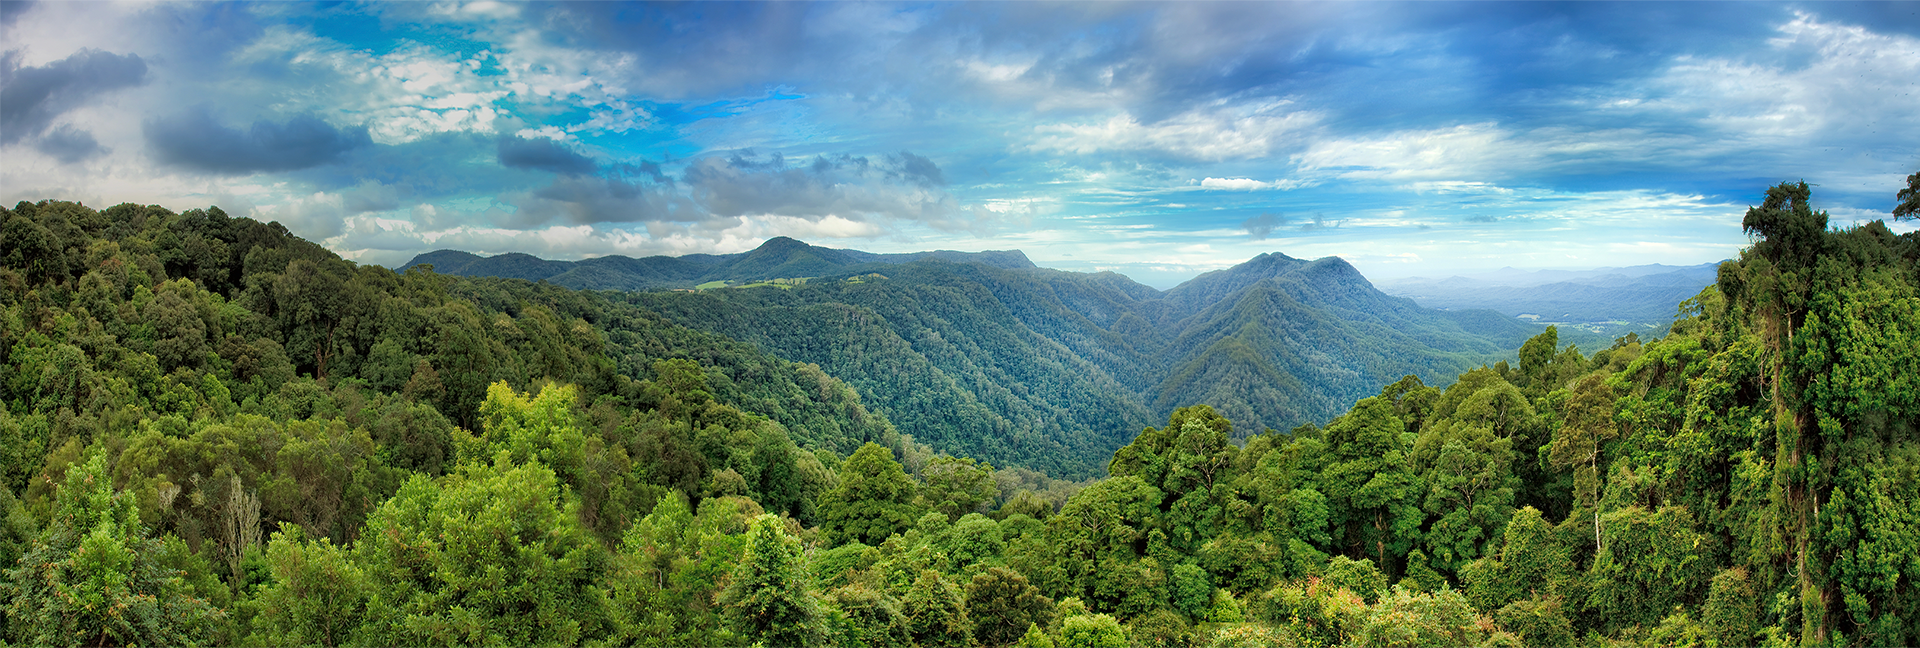 green forest mountain scenery with blue sky